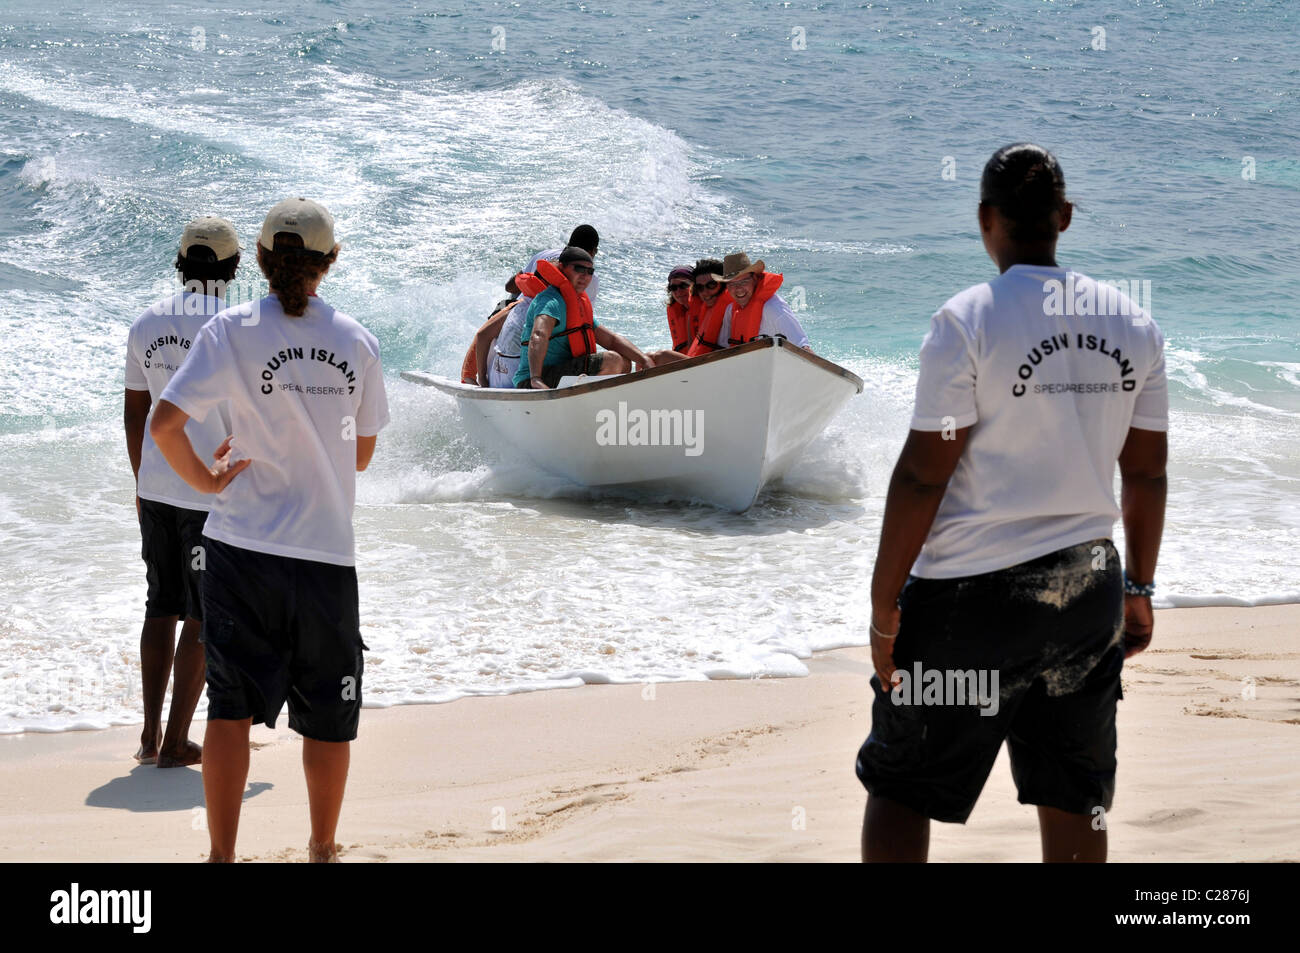 Fast arrival of tourist boat direct onto the beach at Cousin Island Seychelles. - Stock Image